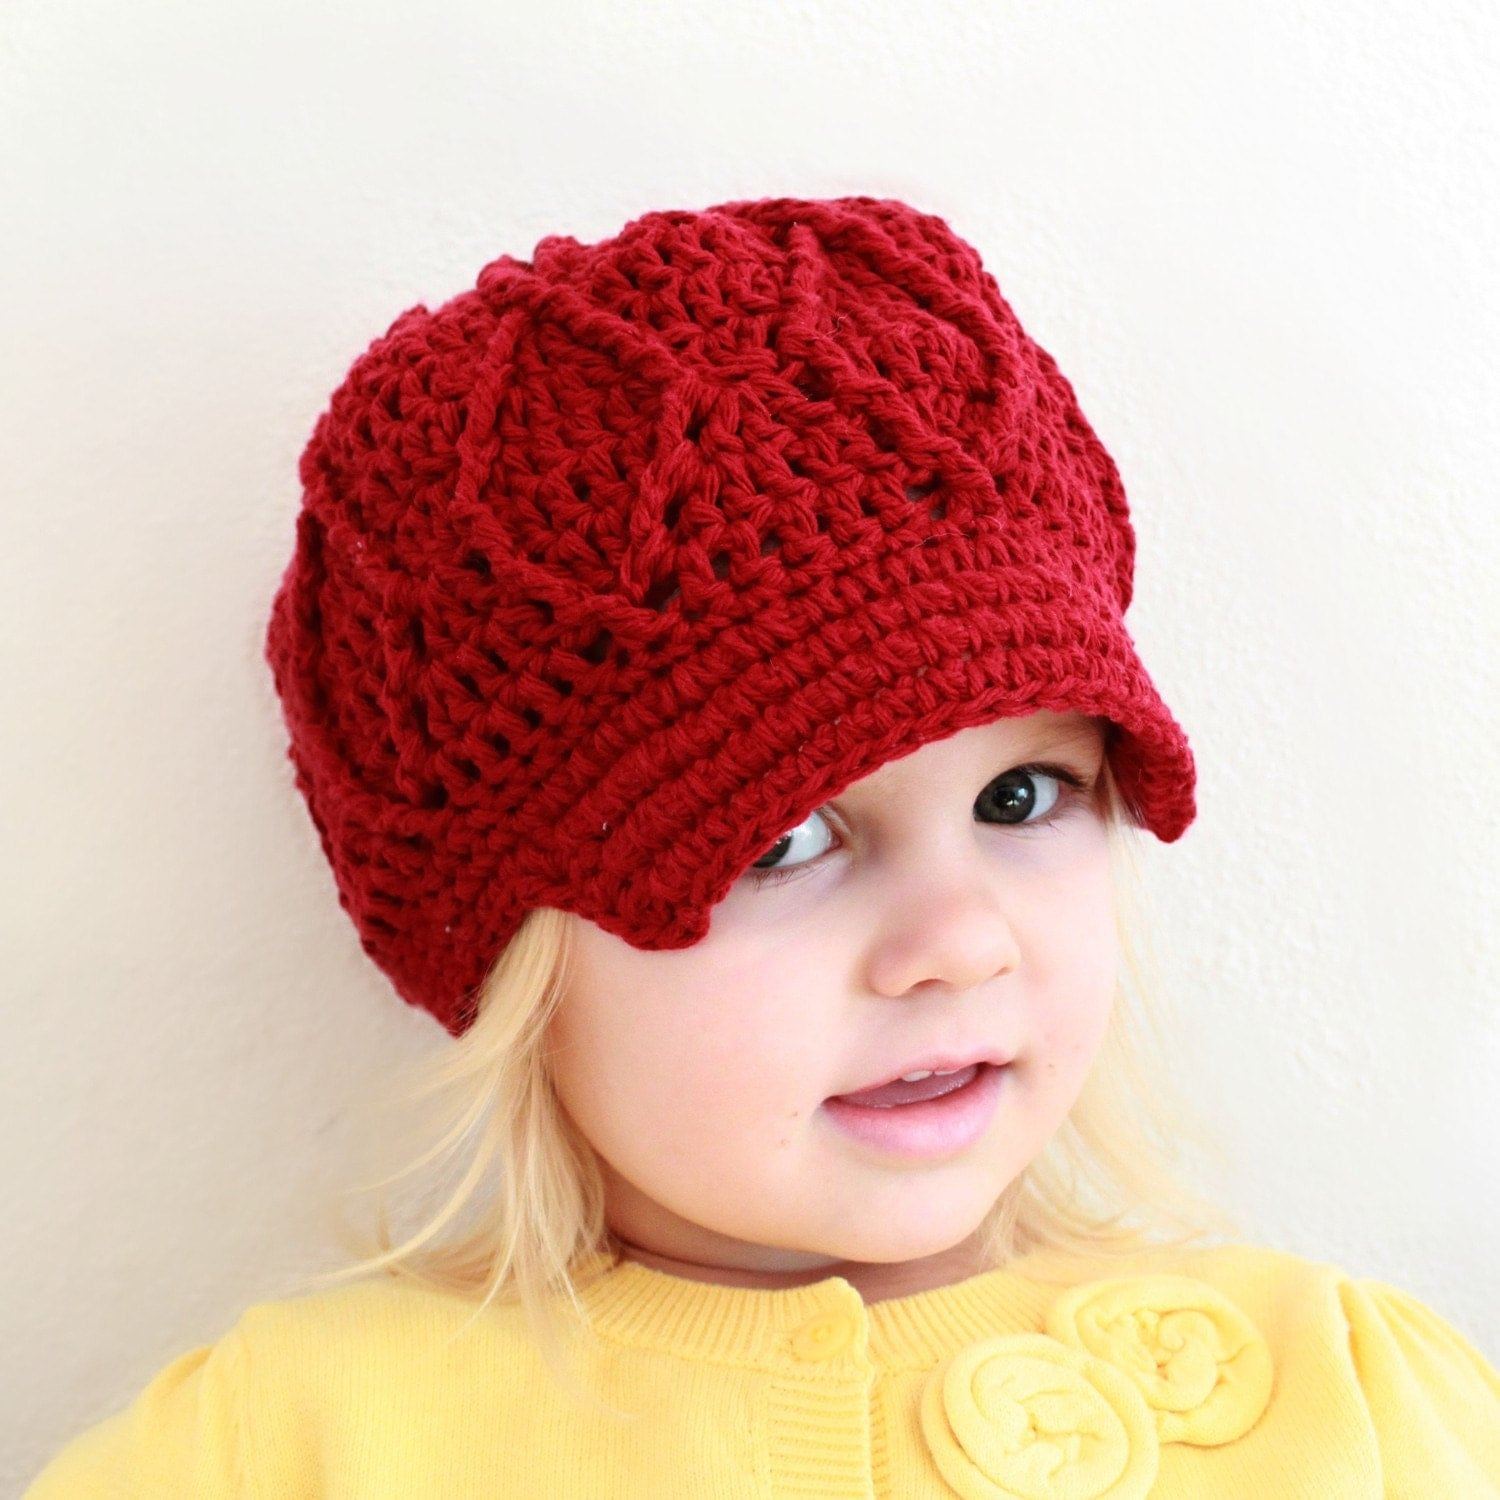 Crochet Patterns Hats For Toddlers : Instant Download Crochet Pattern Maggie Newsboy Hat